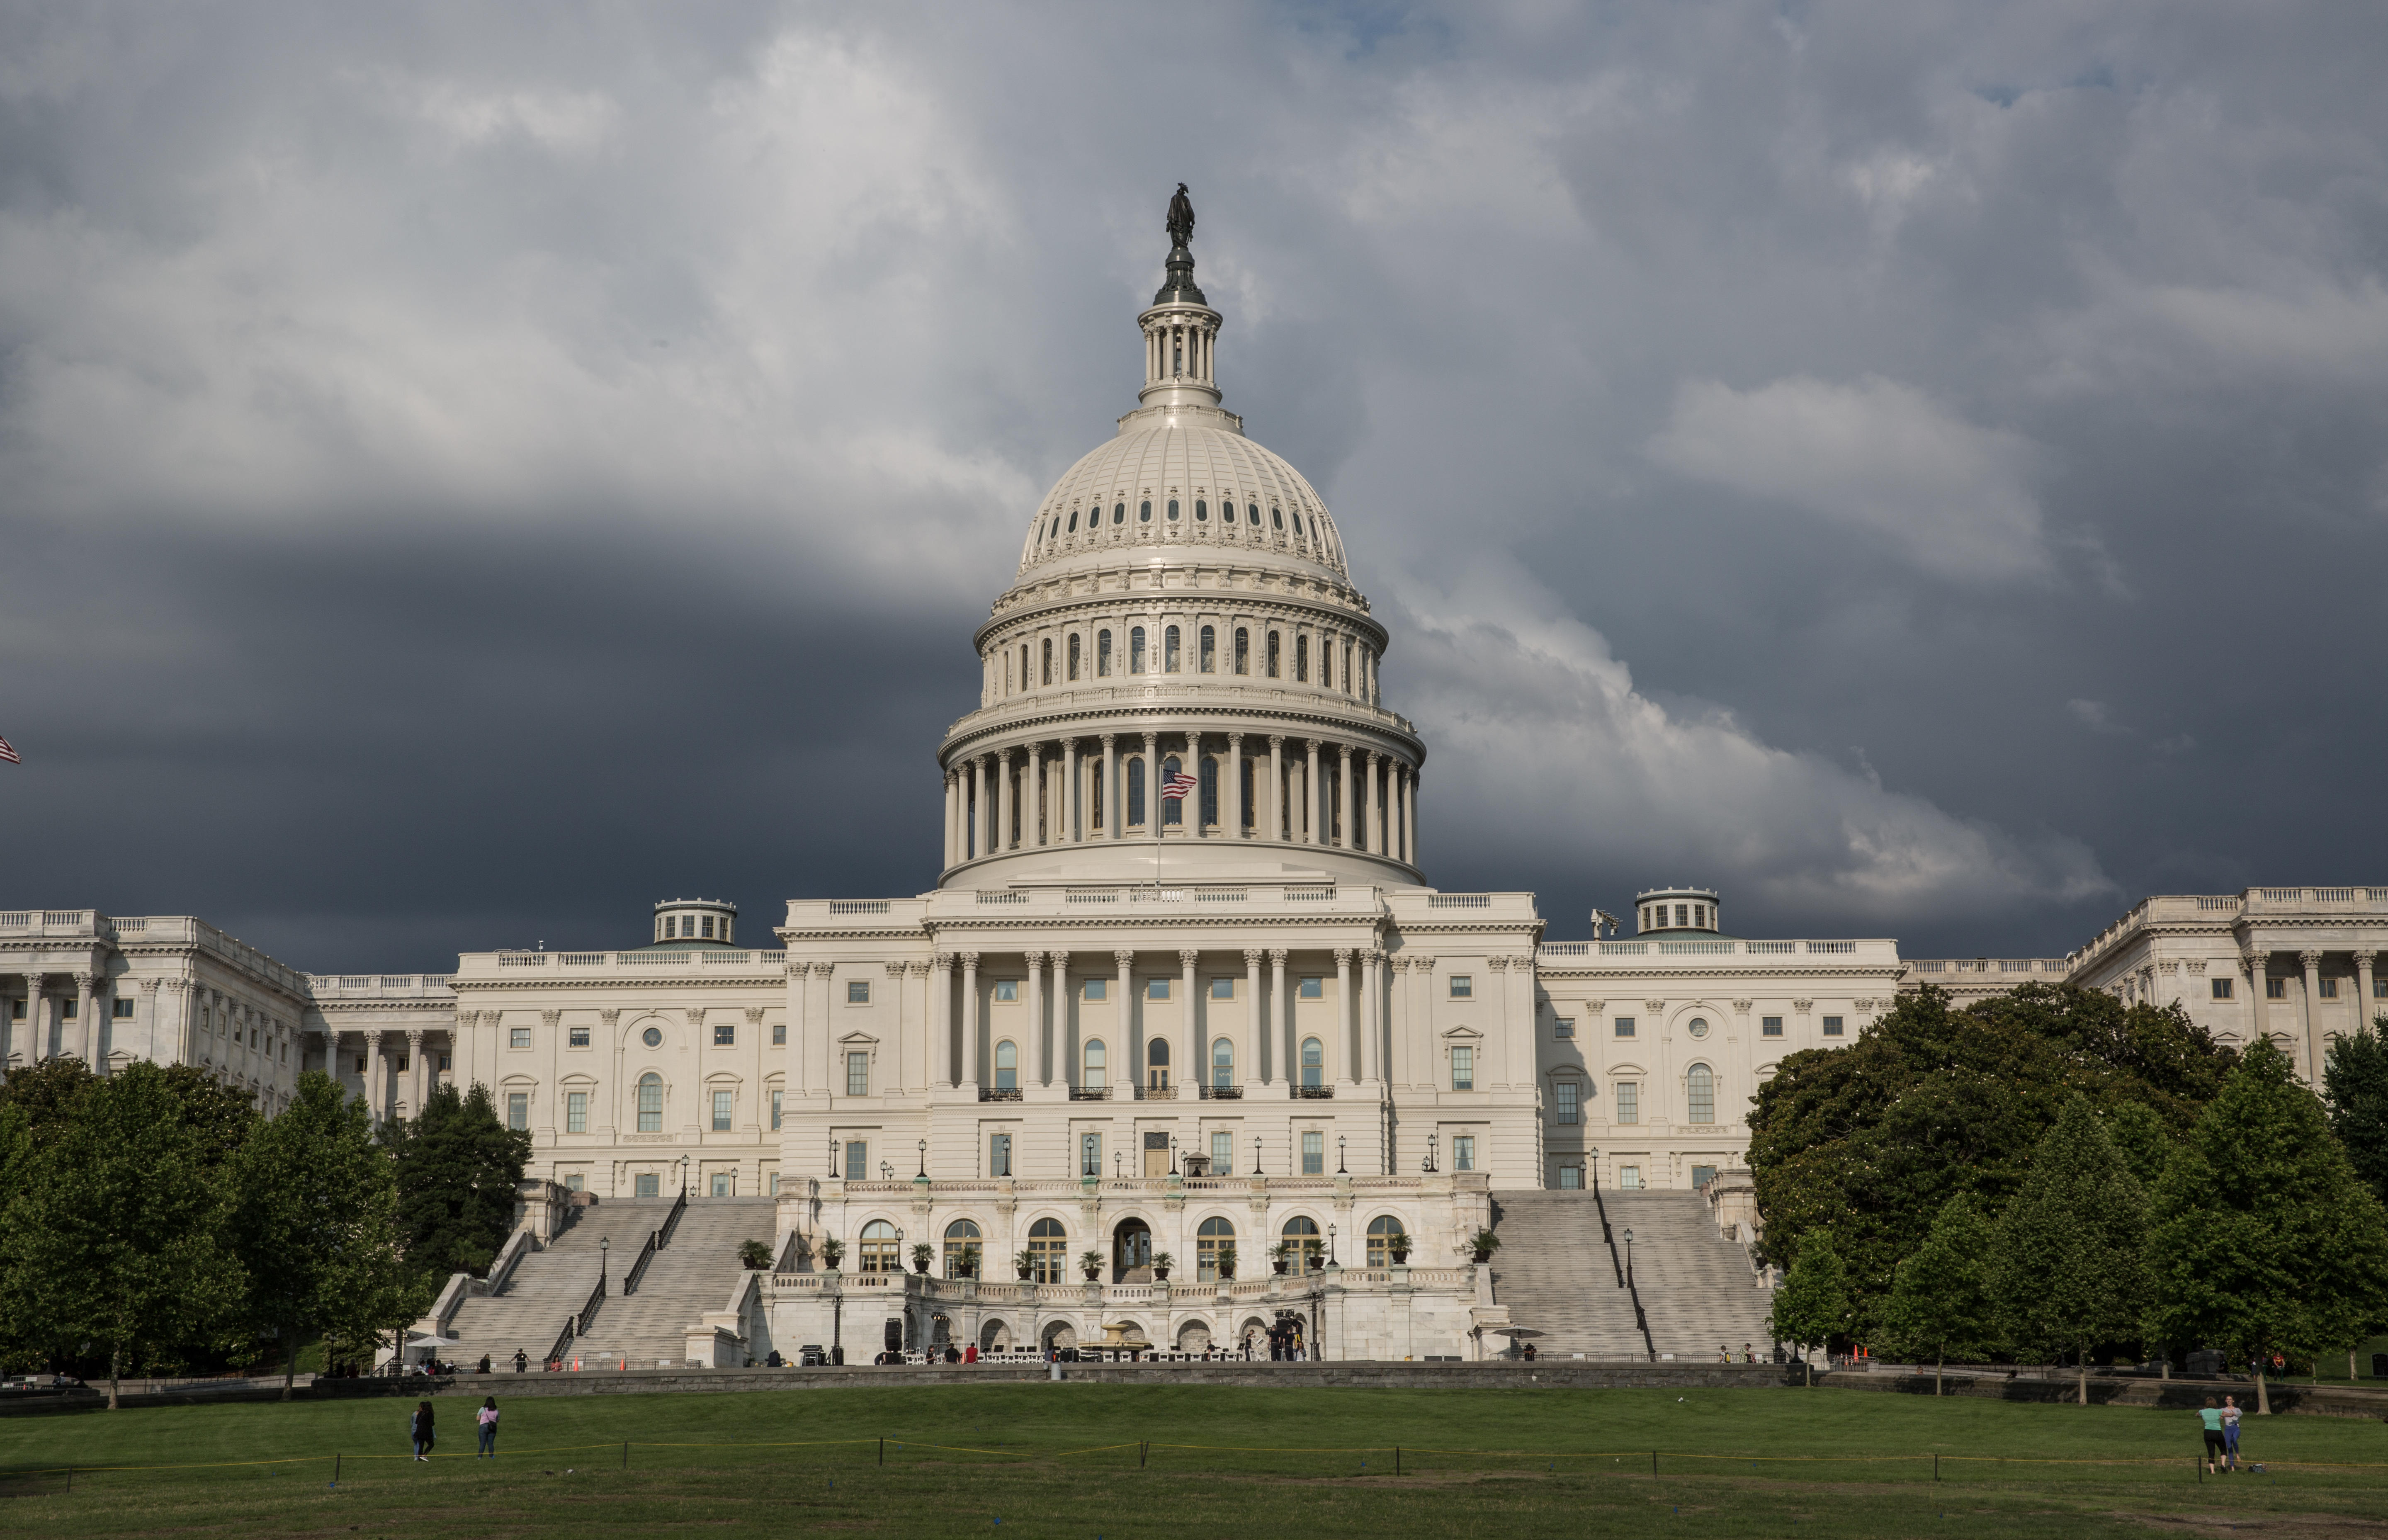 Exterior of the US Capitol building on a cloudy June day in 2018.